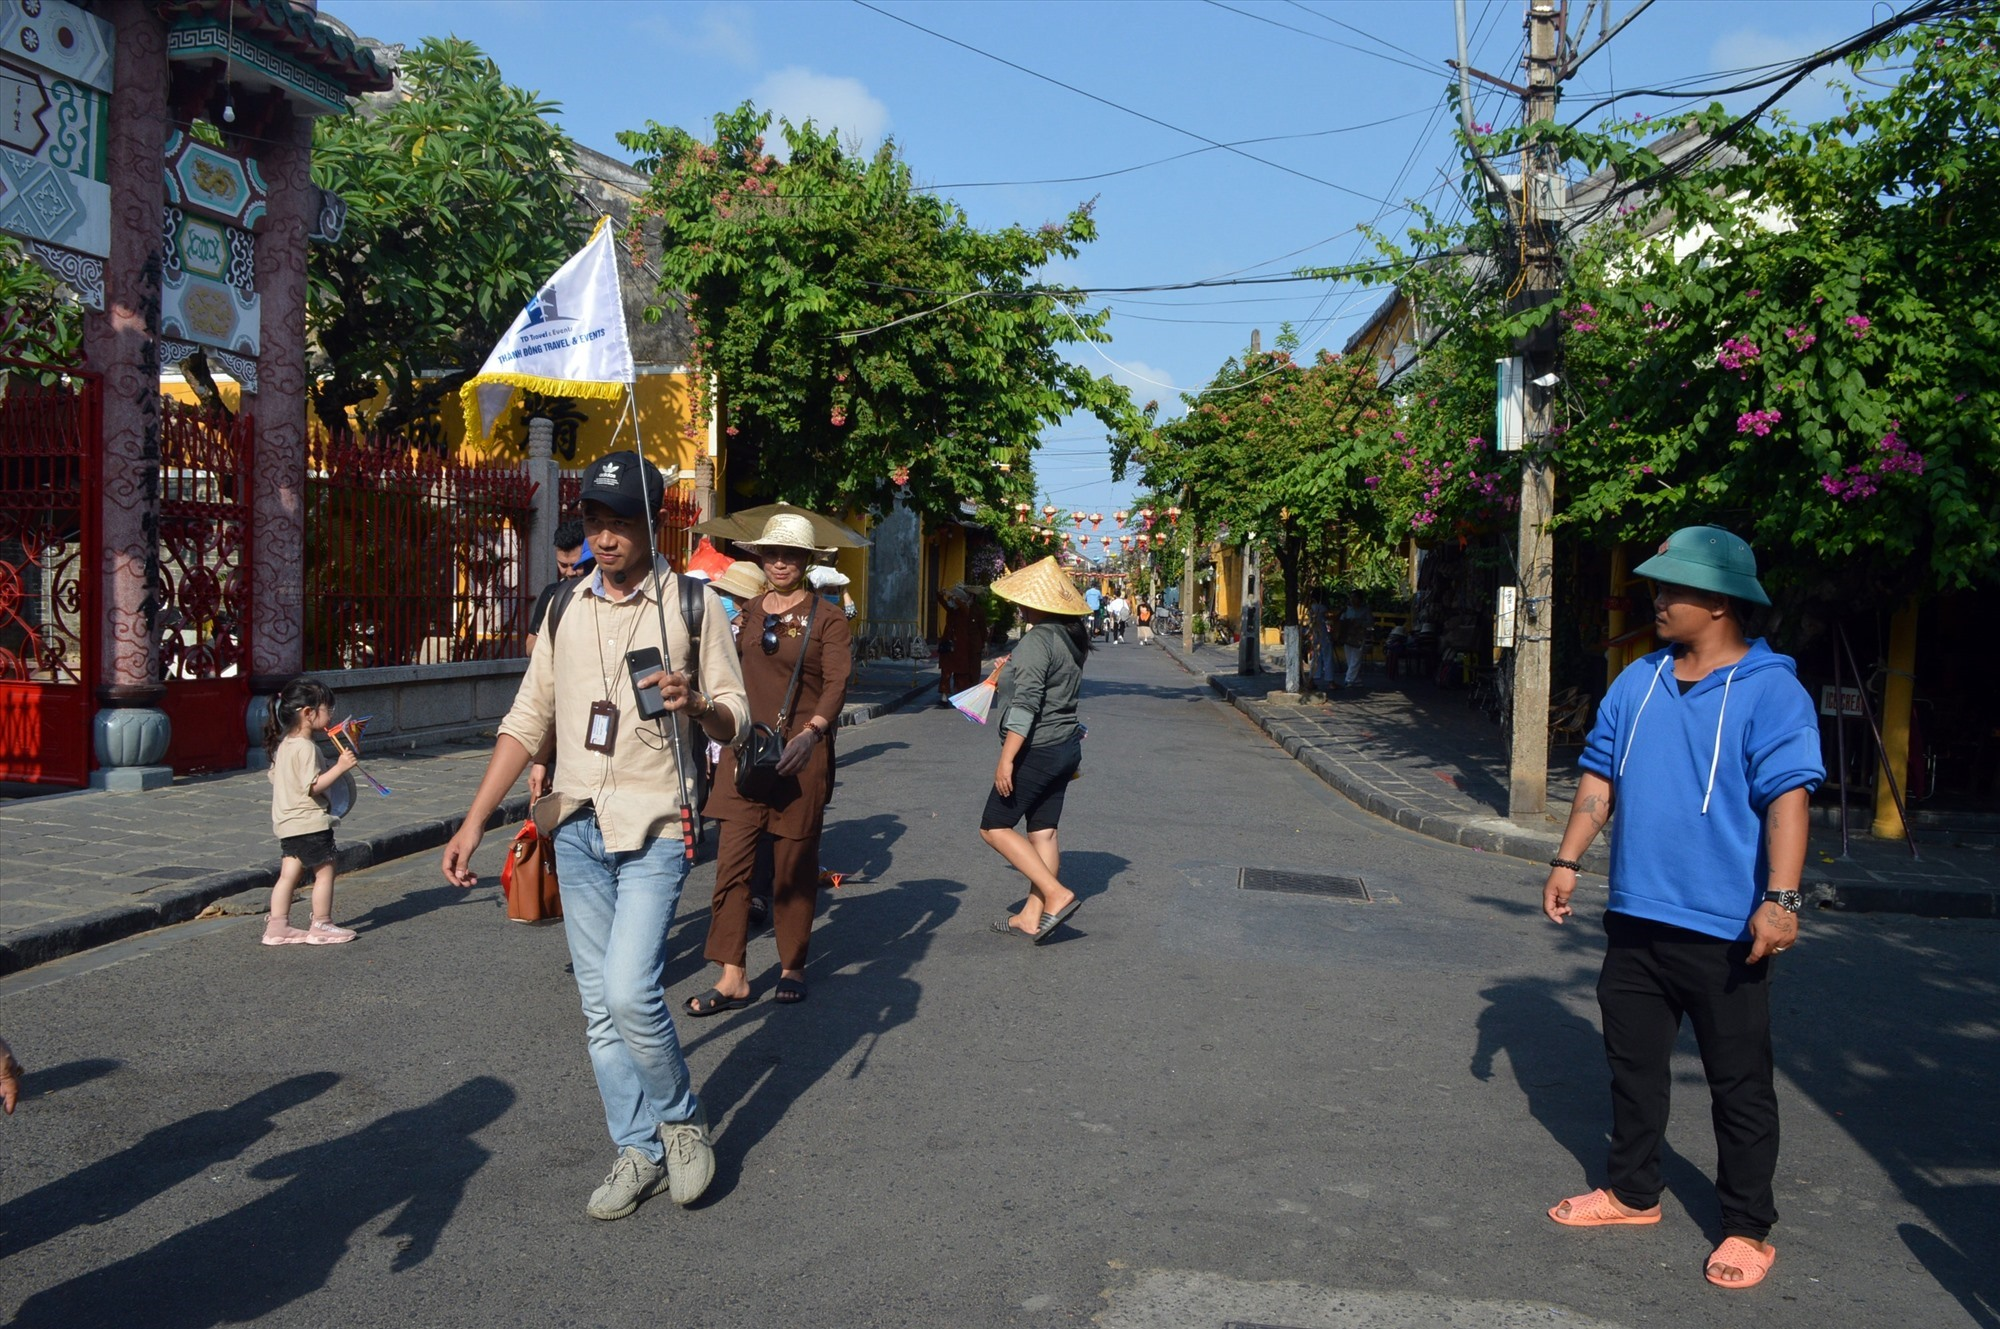 One of tourist delegations back to Hoi An city, Quang Nam province after the Covid-19 pandemic